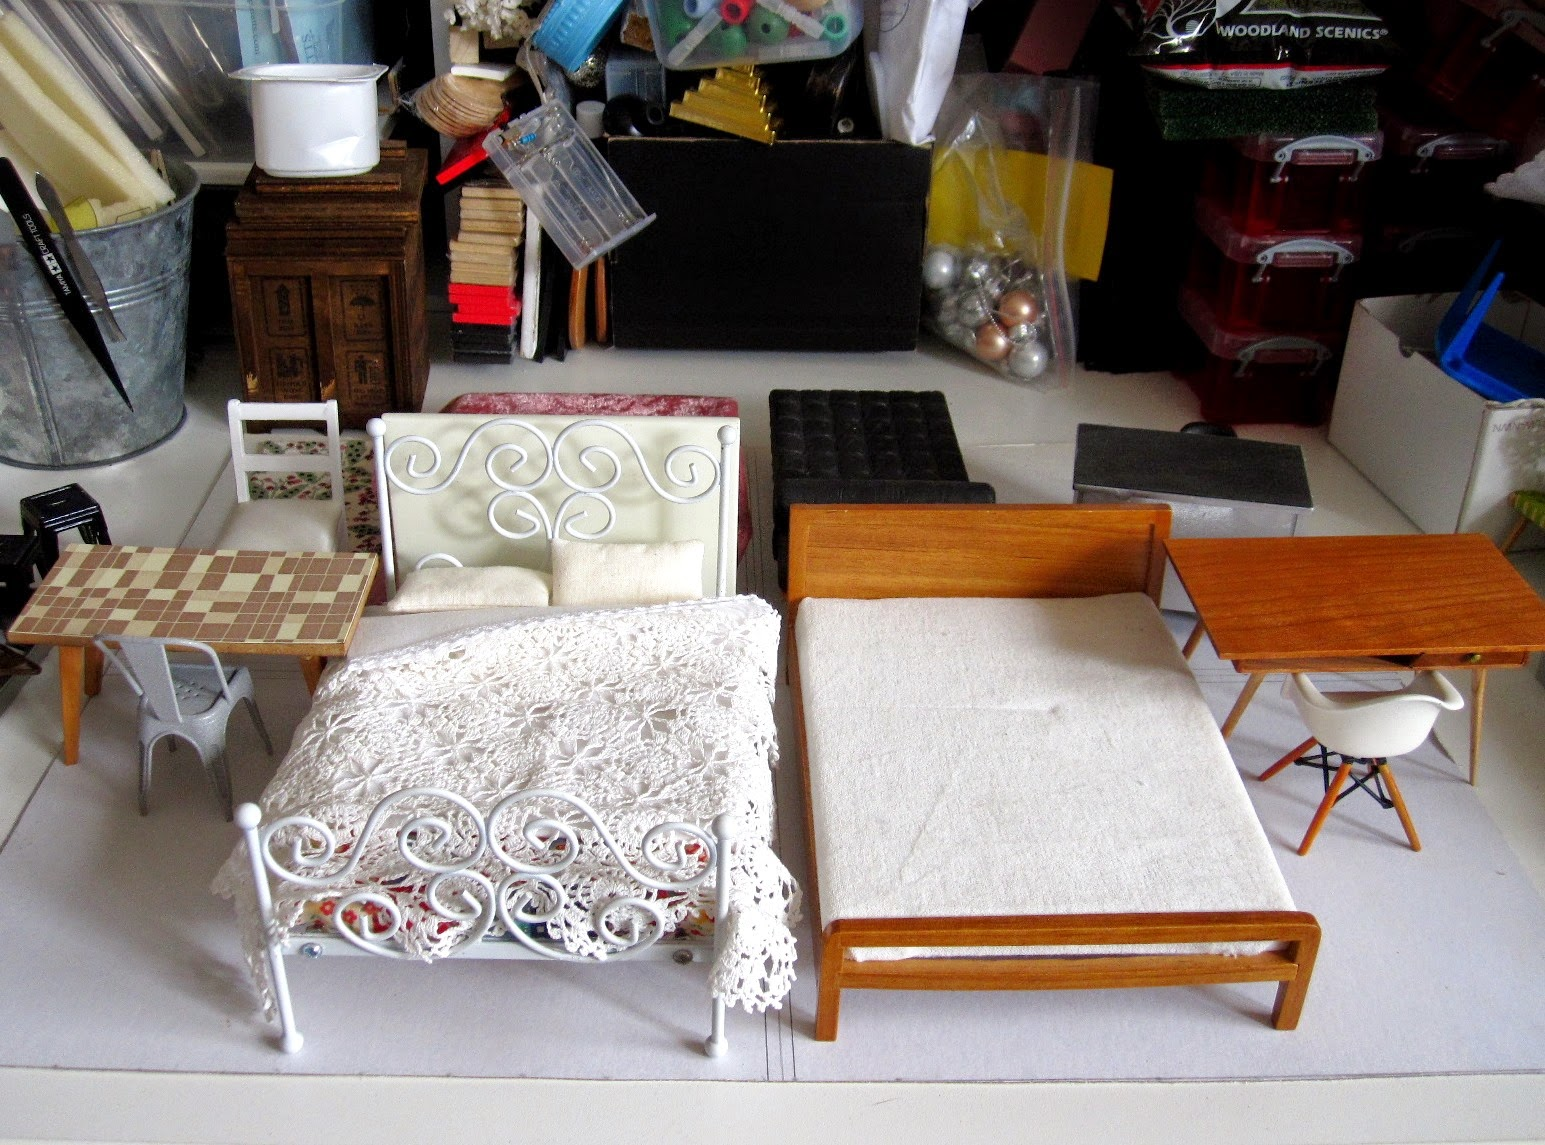 Four sets of modern dolls' house miniature furniture in different styles arranged in room settings on a piece of cardboard.